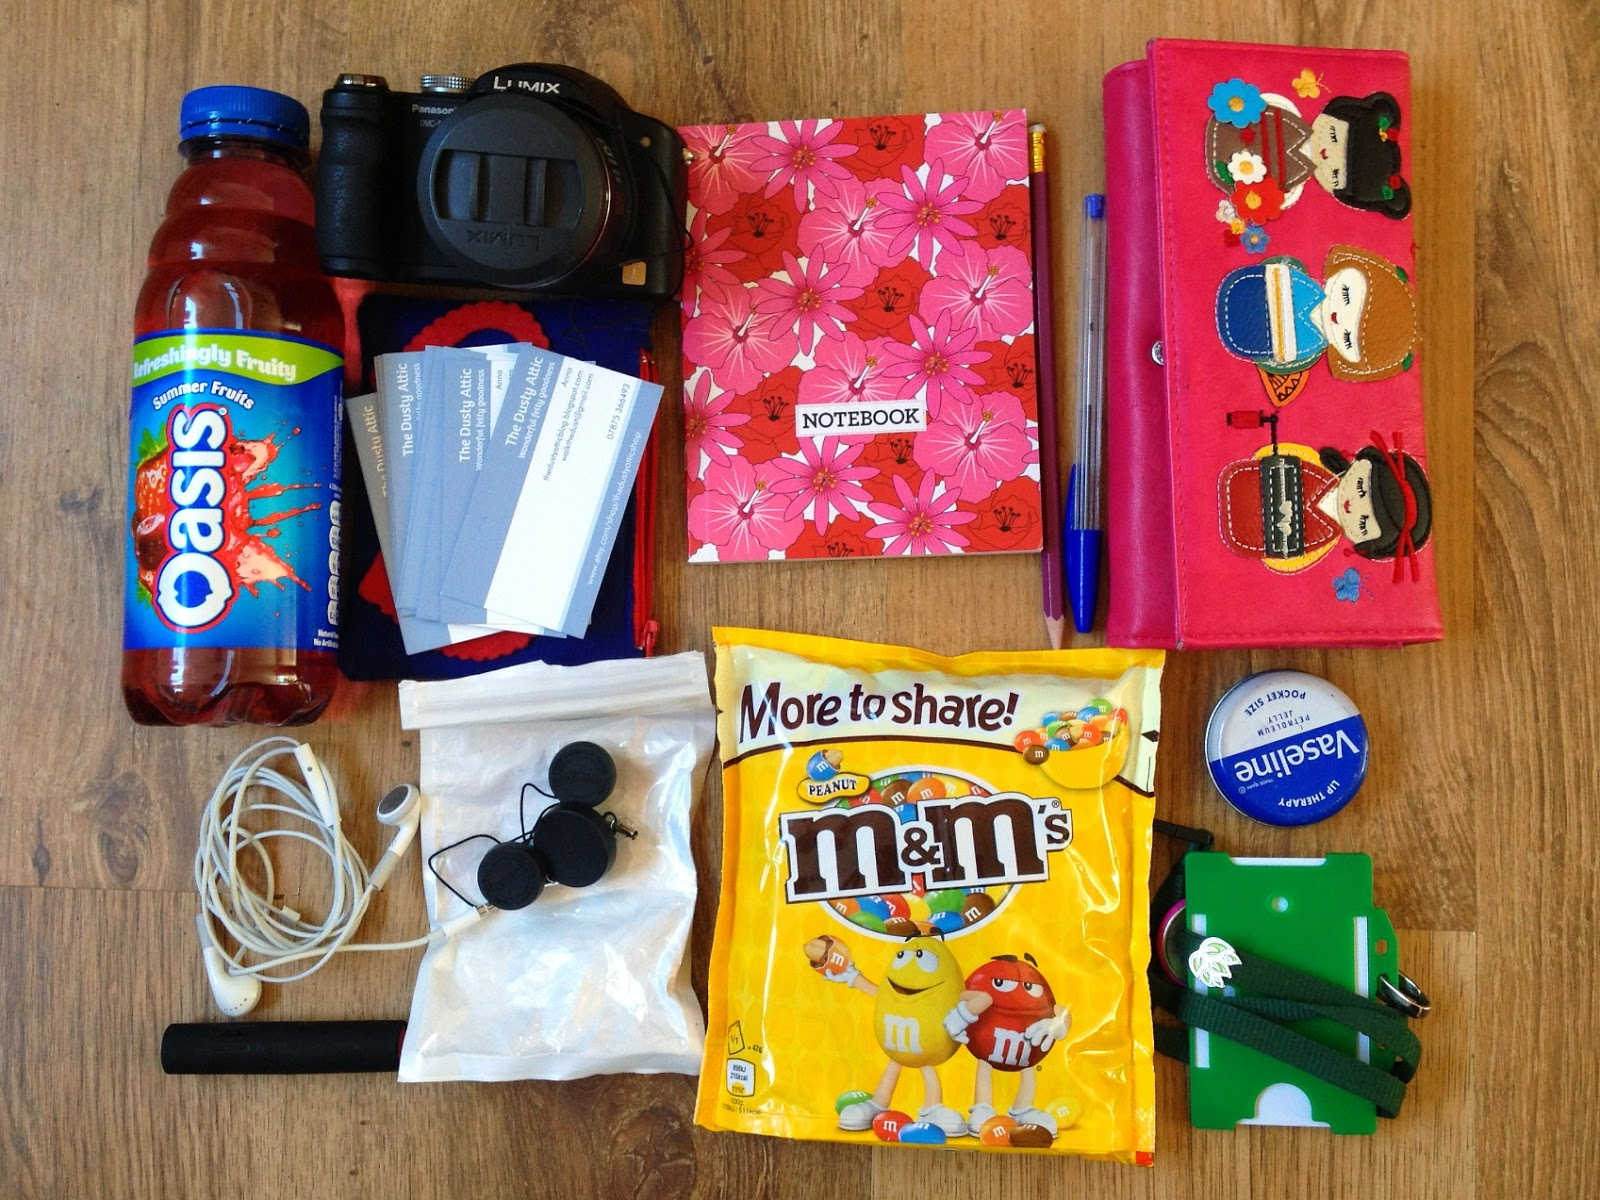 woolfest survival kit - or - what's in my bag for woolfest